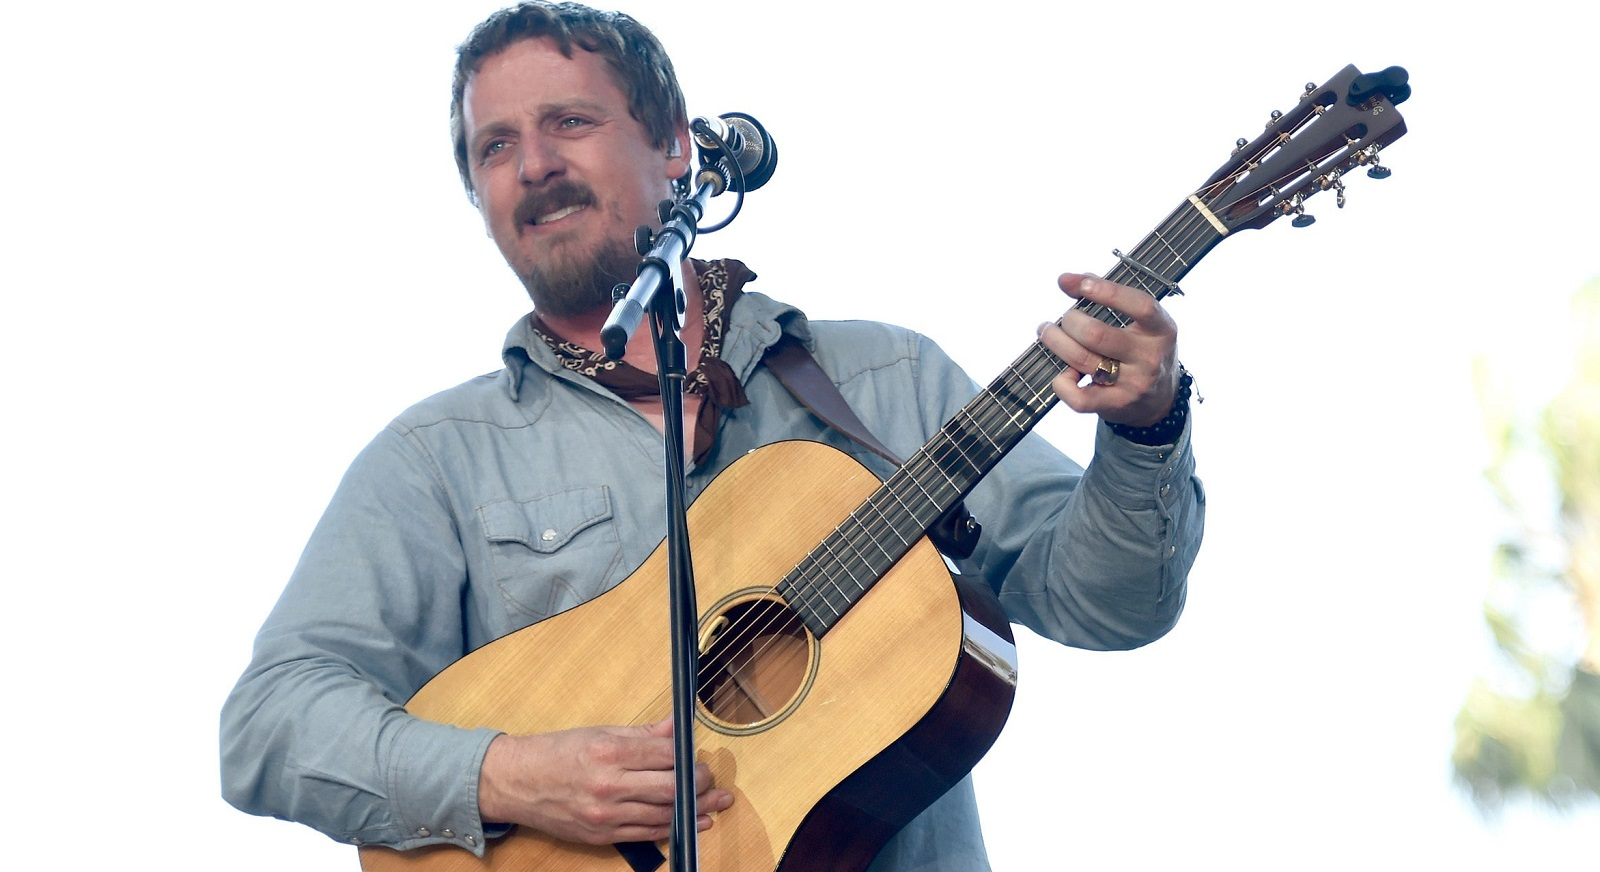 Sturgill Simpson performed Sunday night in Town Ballroom. (Photo by Frazer Harrison/Getty Images)